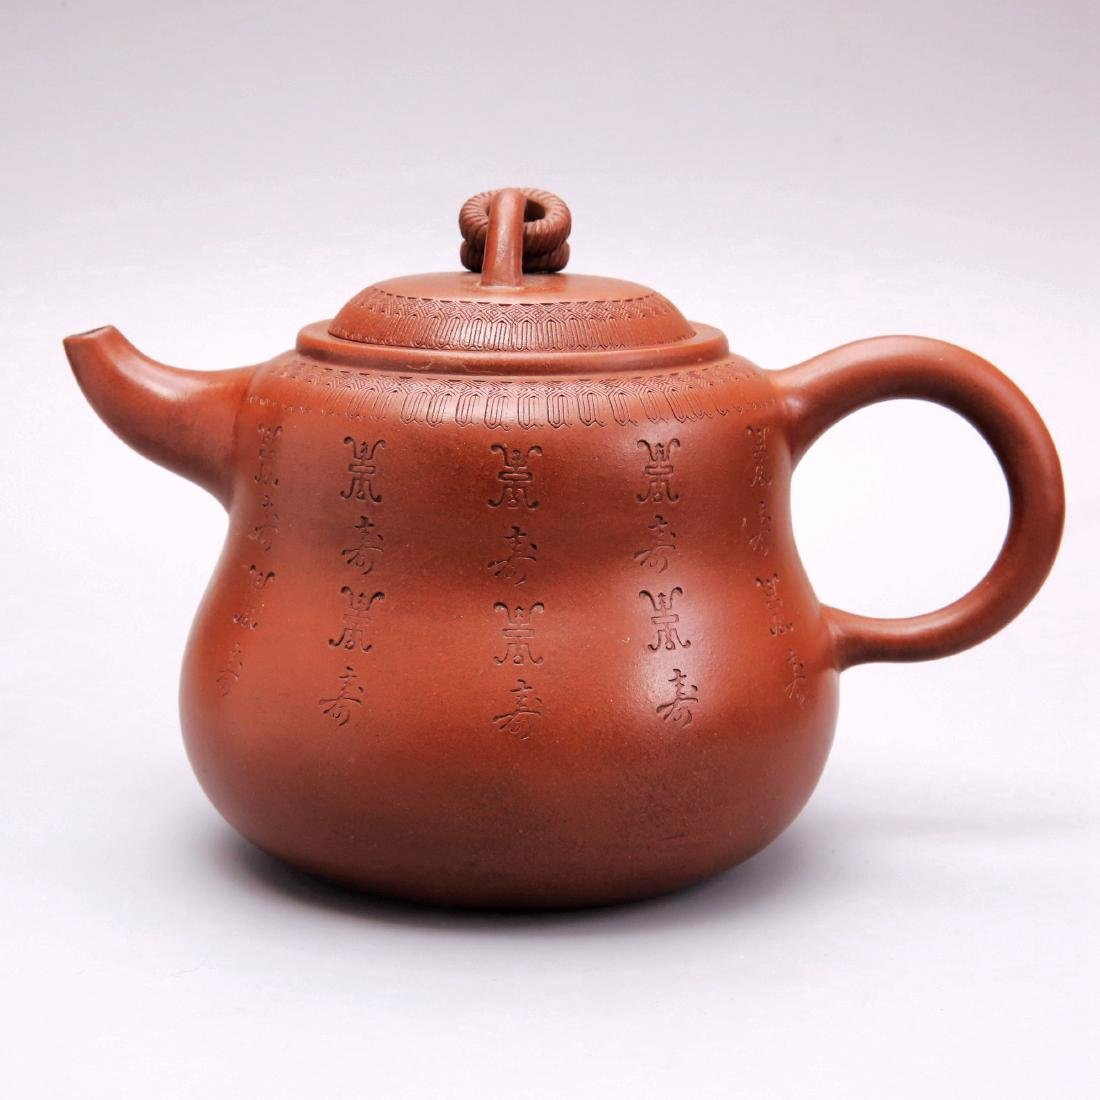 A CHINESE CELEBRITY PURPLE CLAY TEAPOT